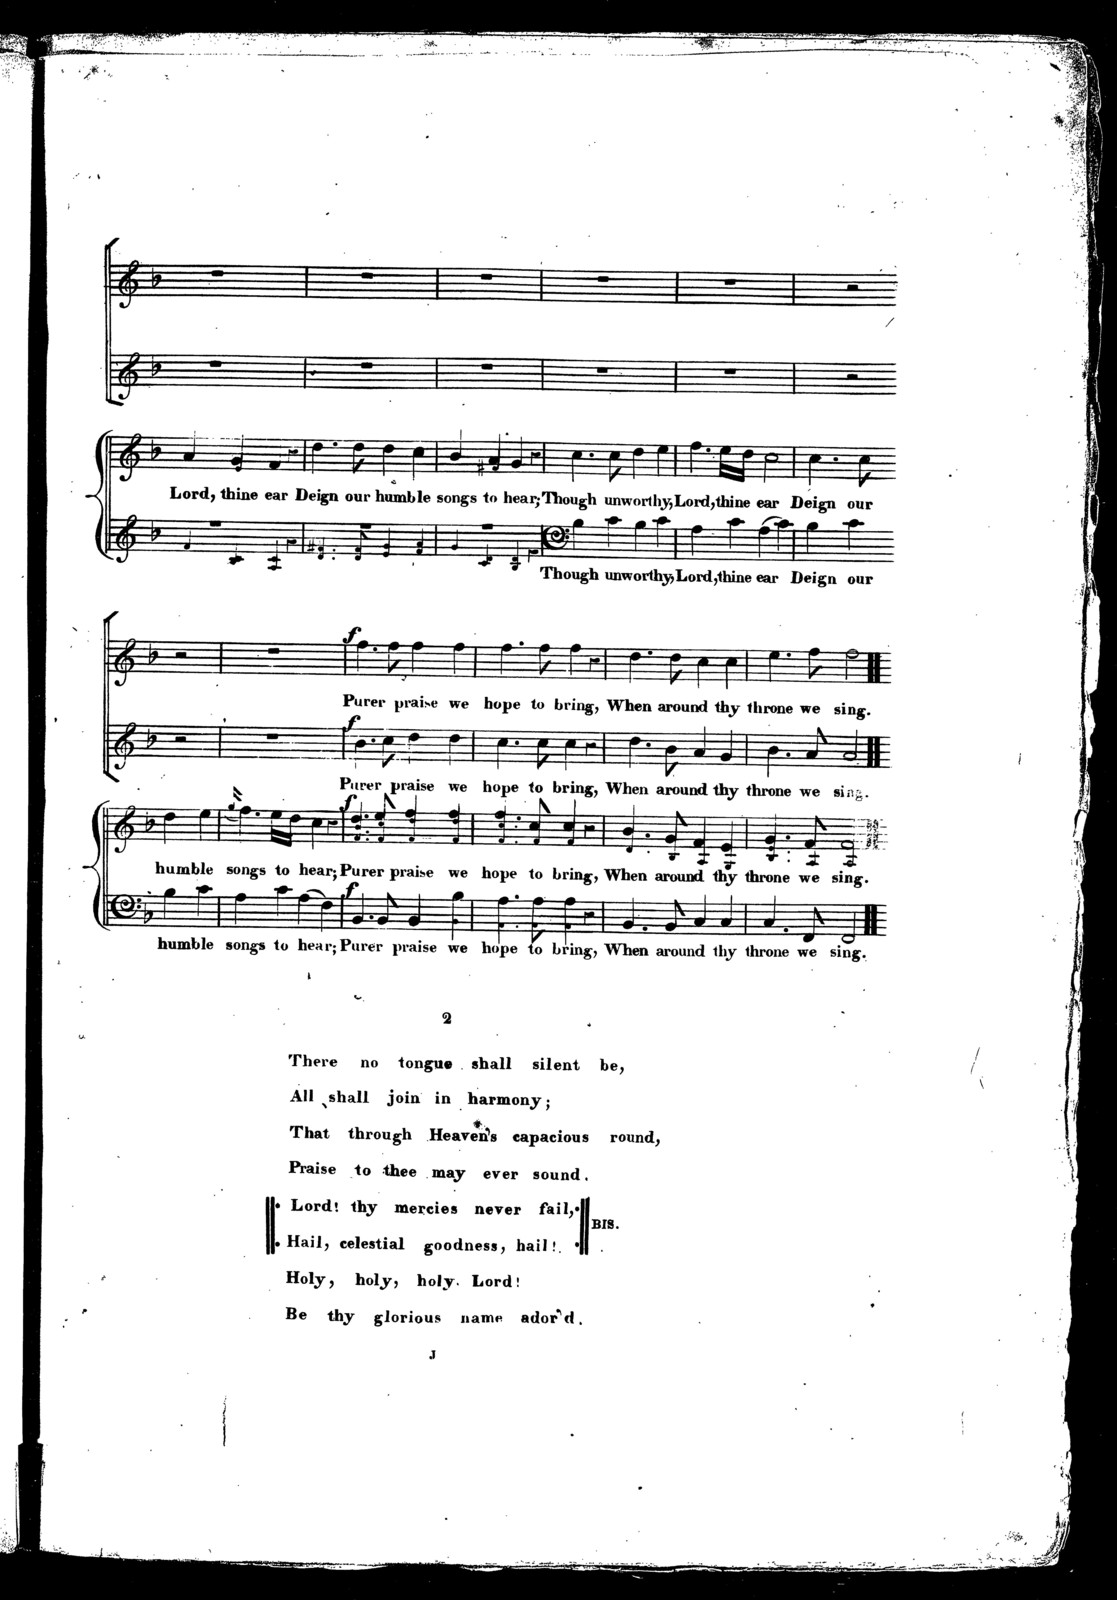 Holy, holy, holy! Lord! 42nd hymn